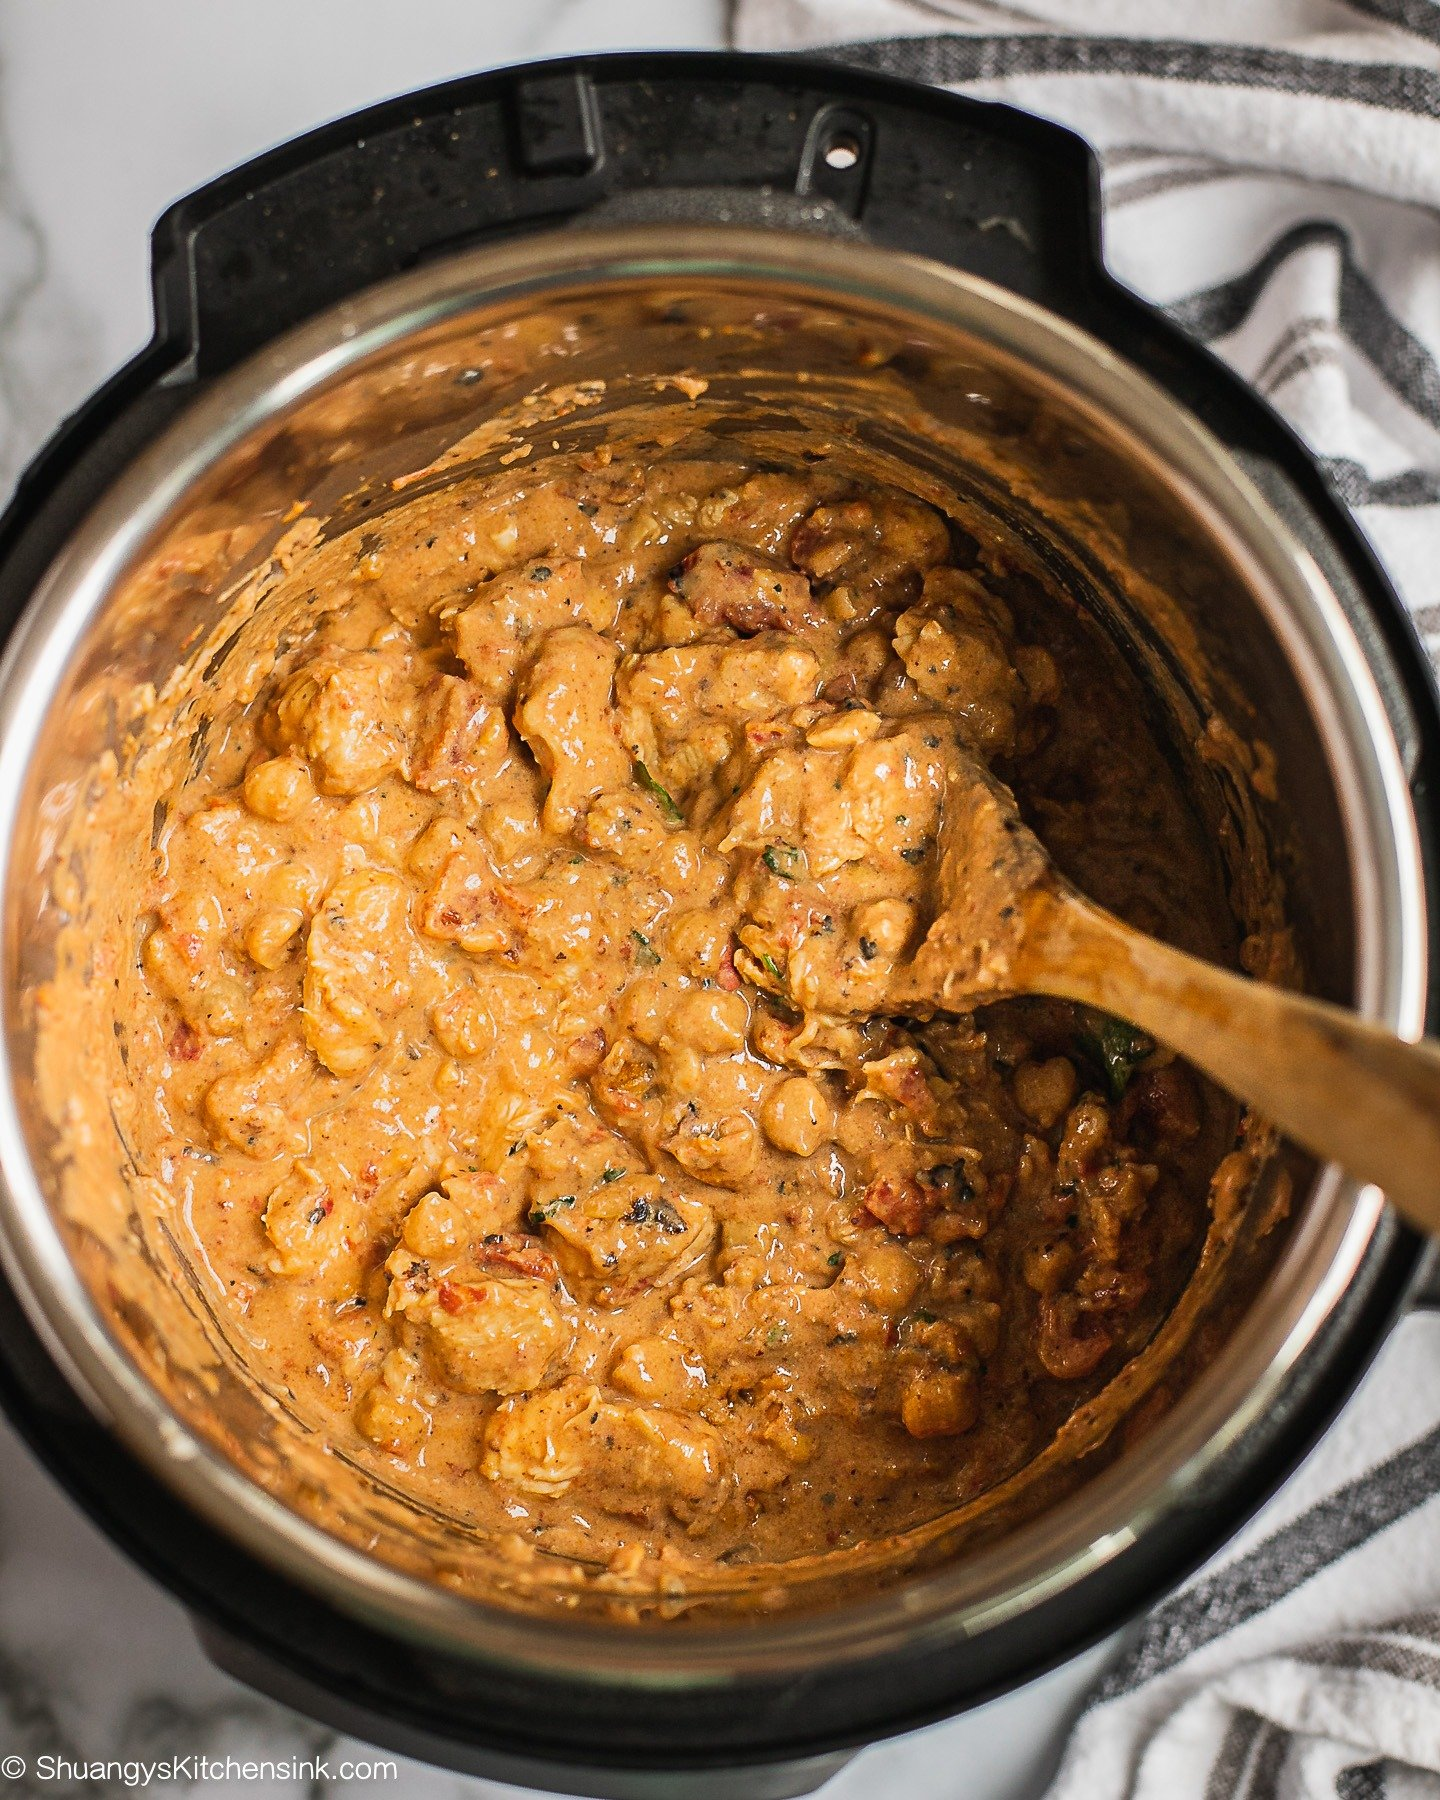 A pot of creamy peanut butter chicken after cooking in pressure cooker.